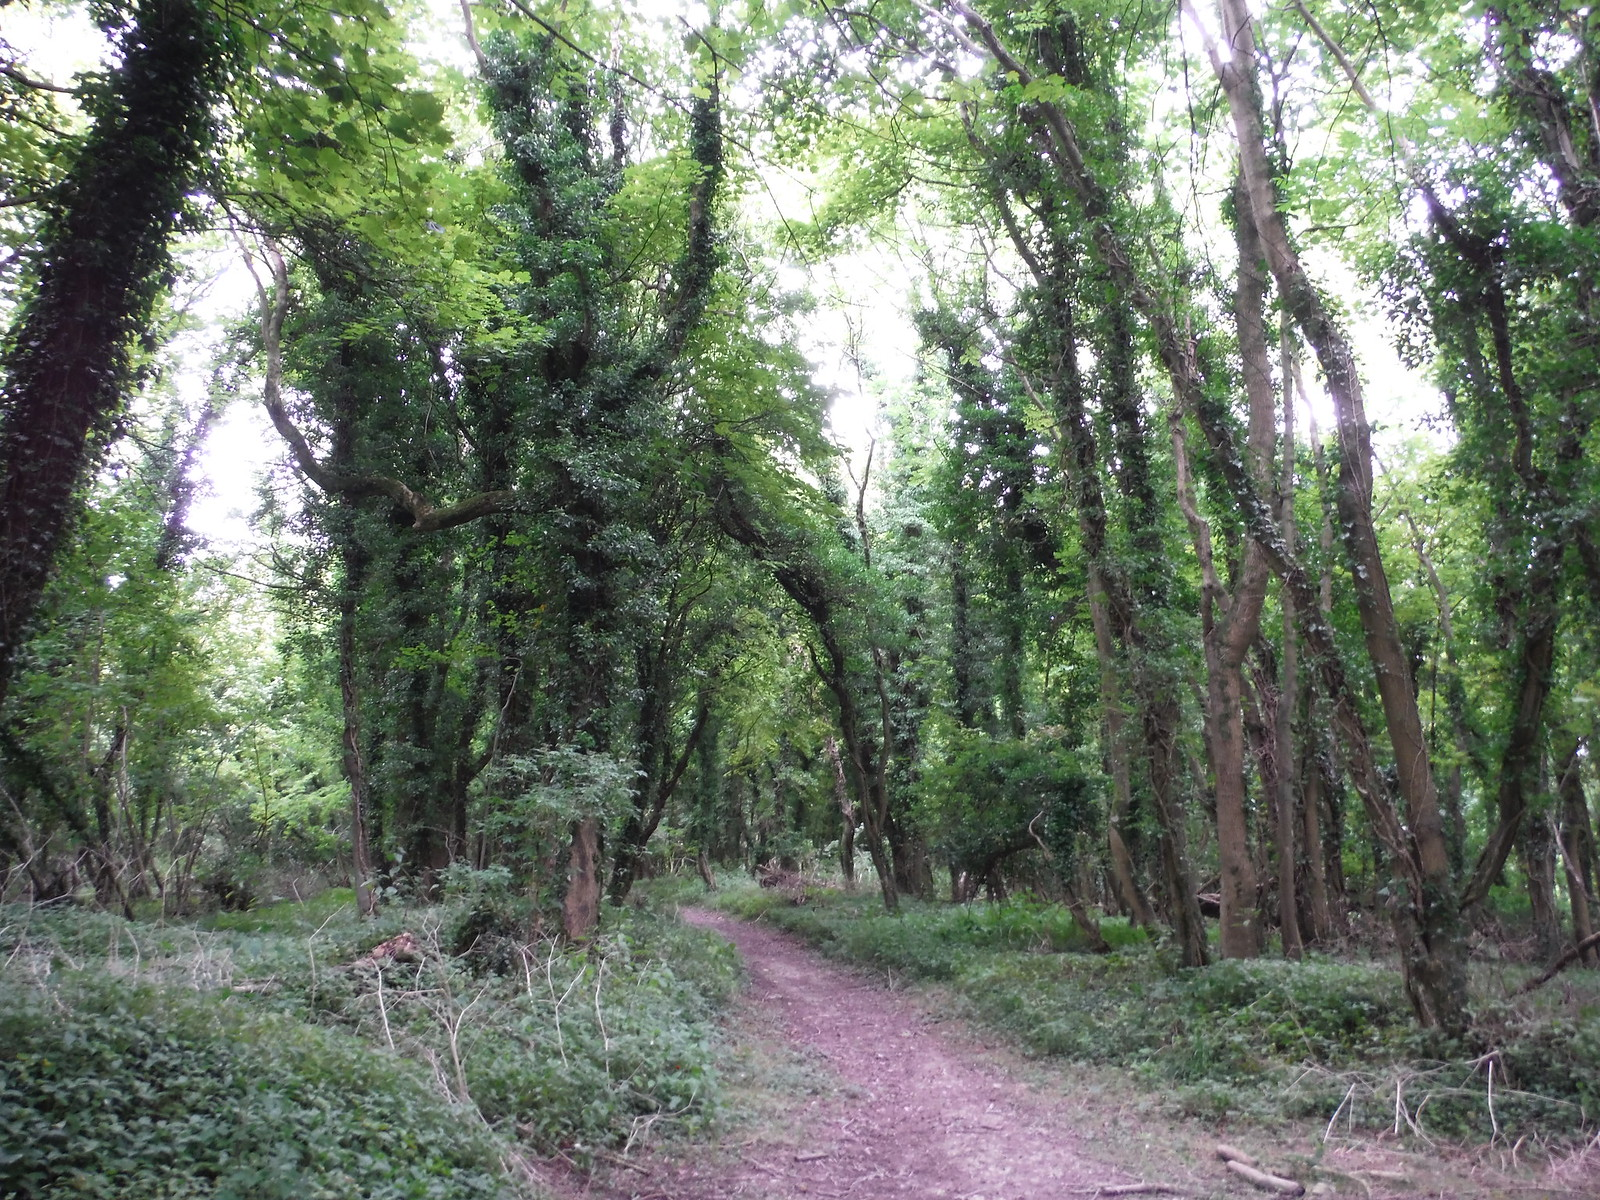 Elliot's Shed Wood SWC Walk 251 Tisbury Circular via Ludwell and Berwick St. John